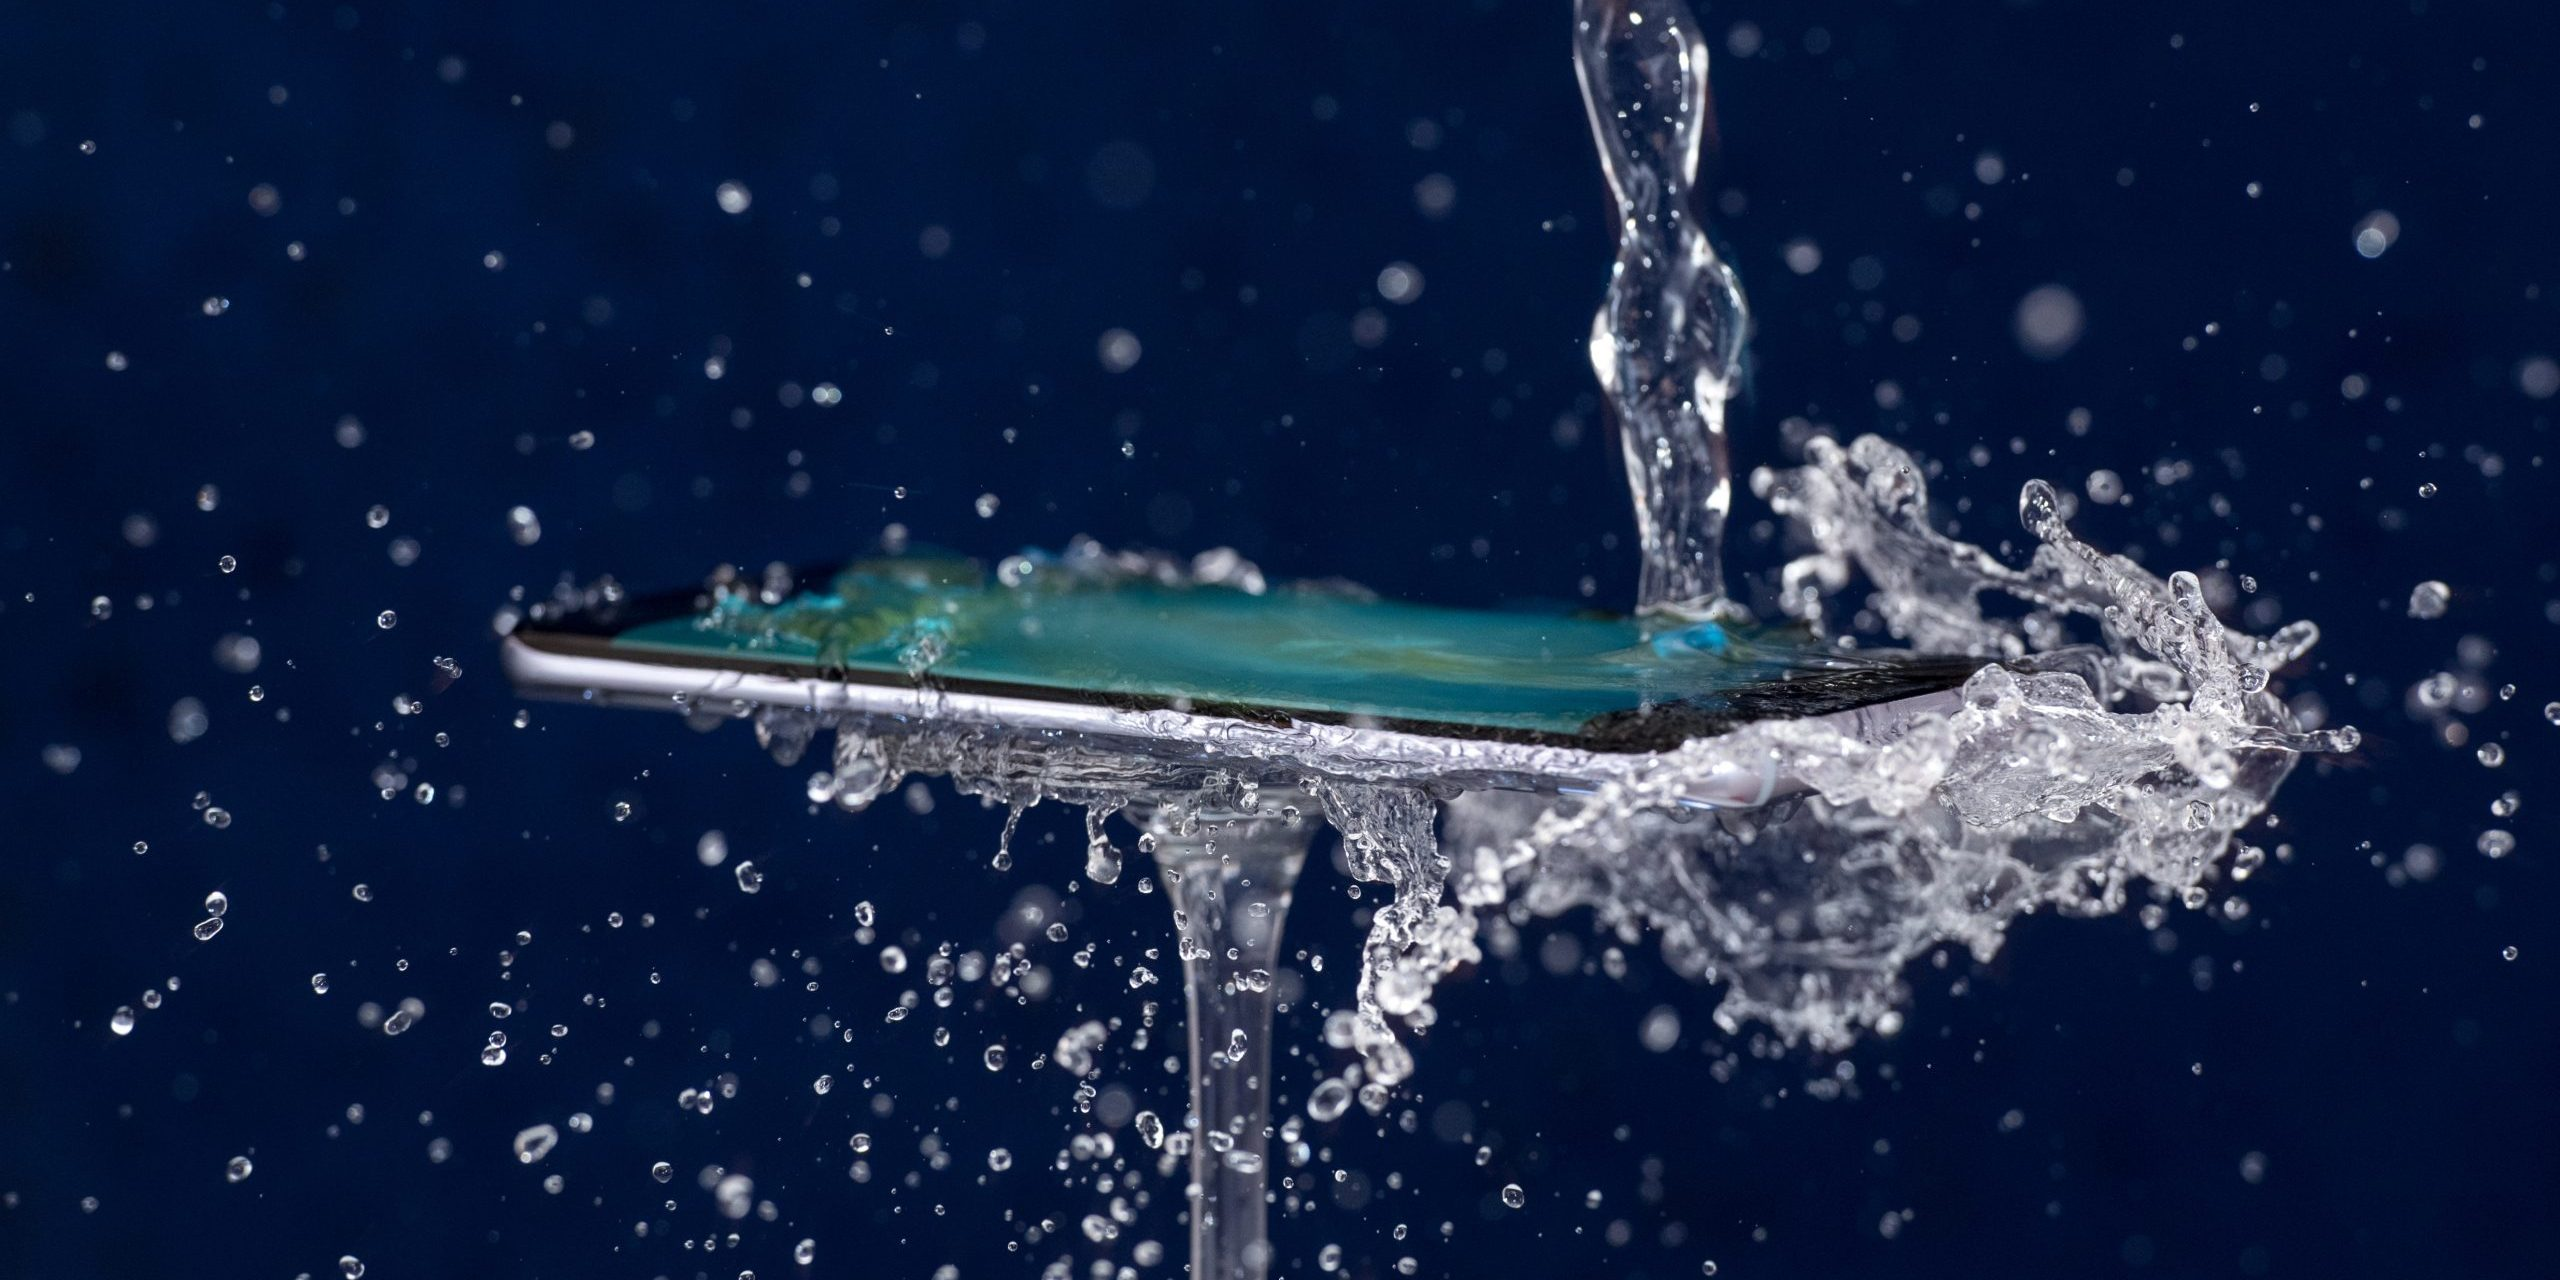 Cellphone with Aculon PCB Waterproofing